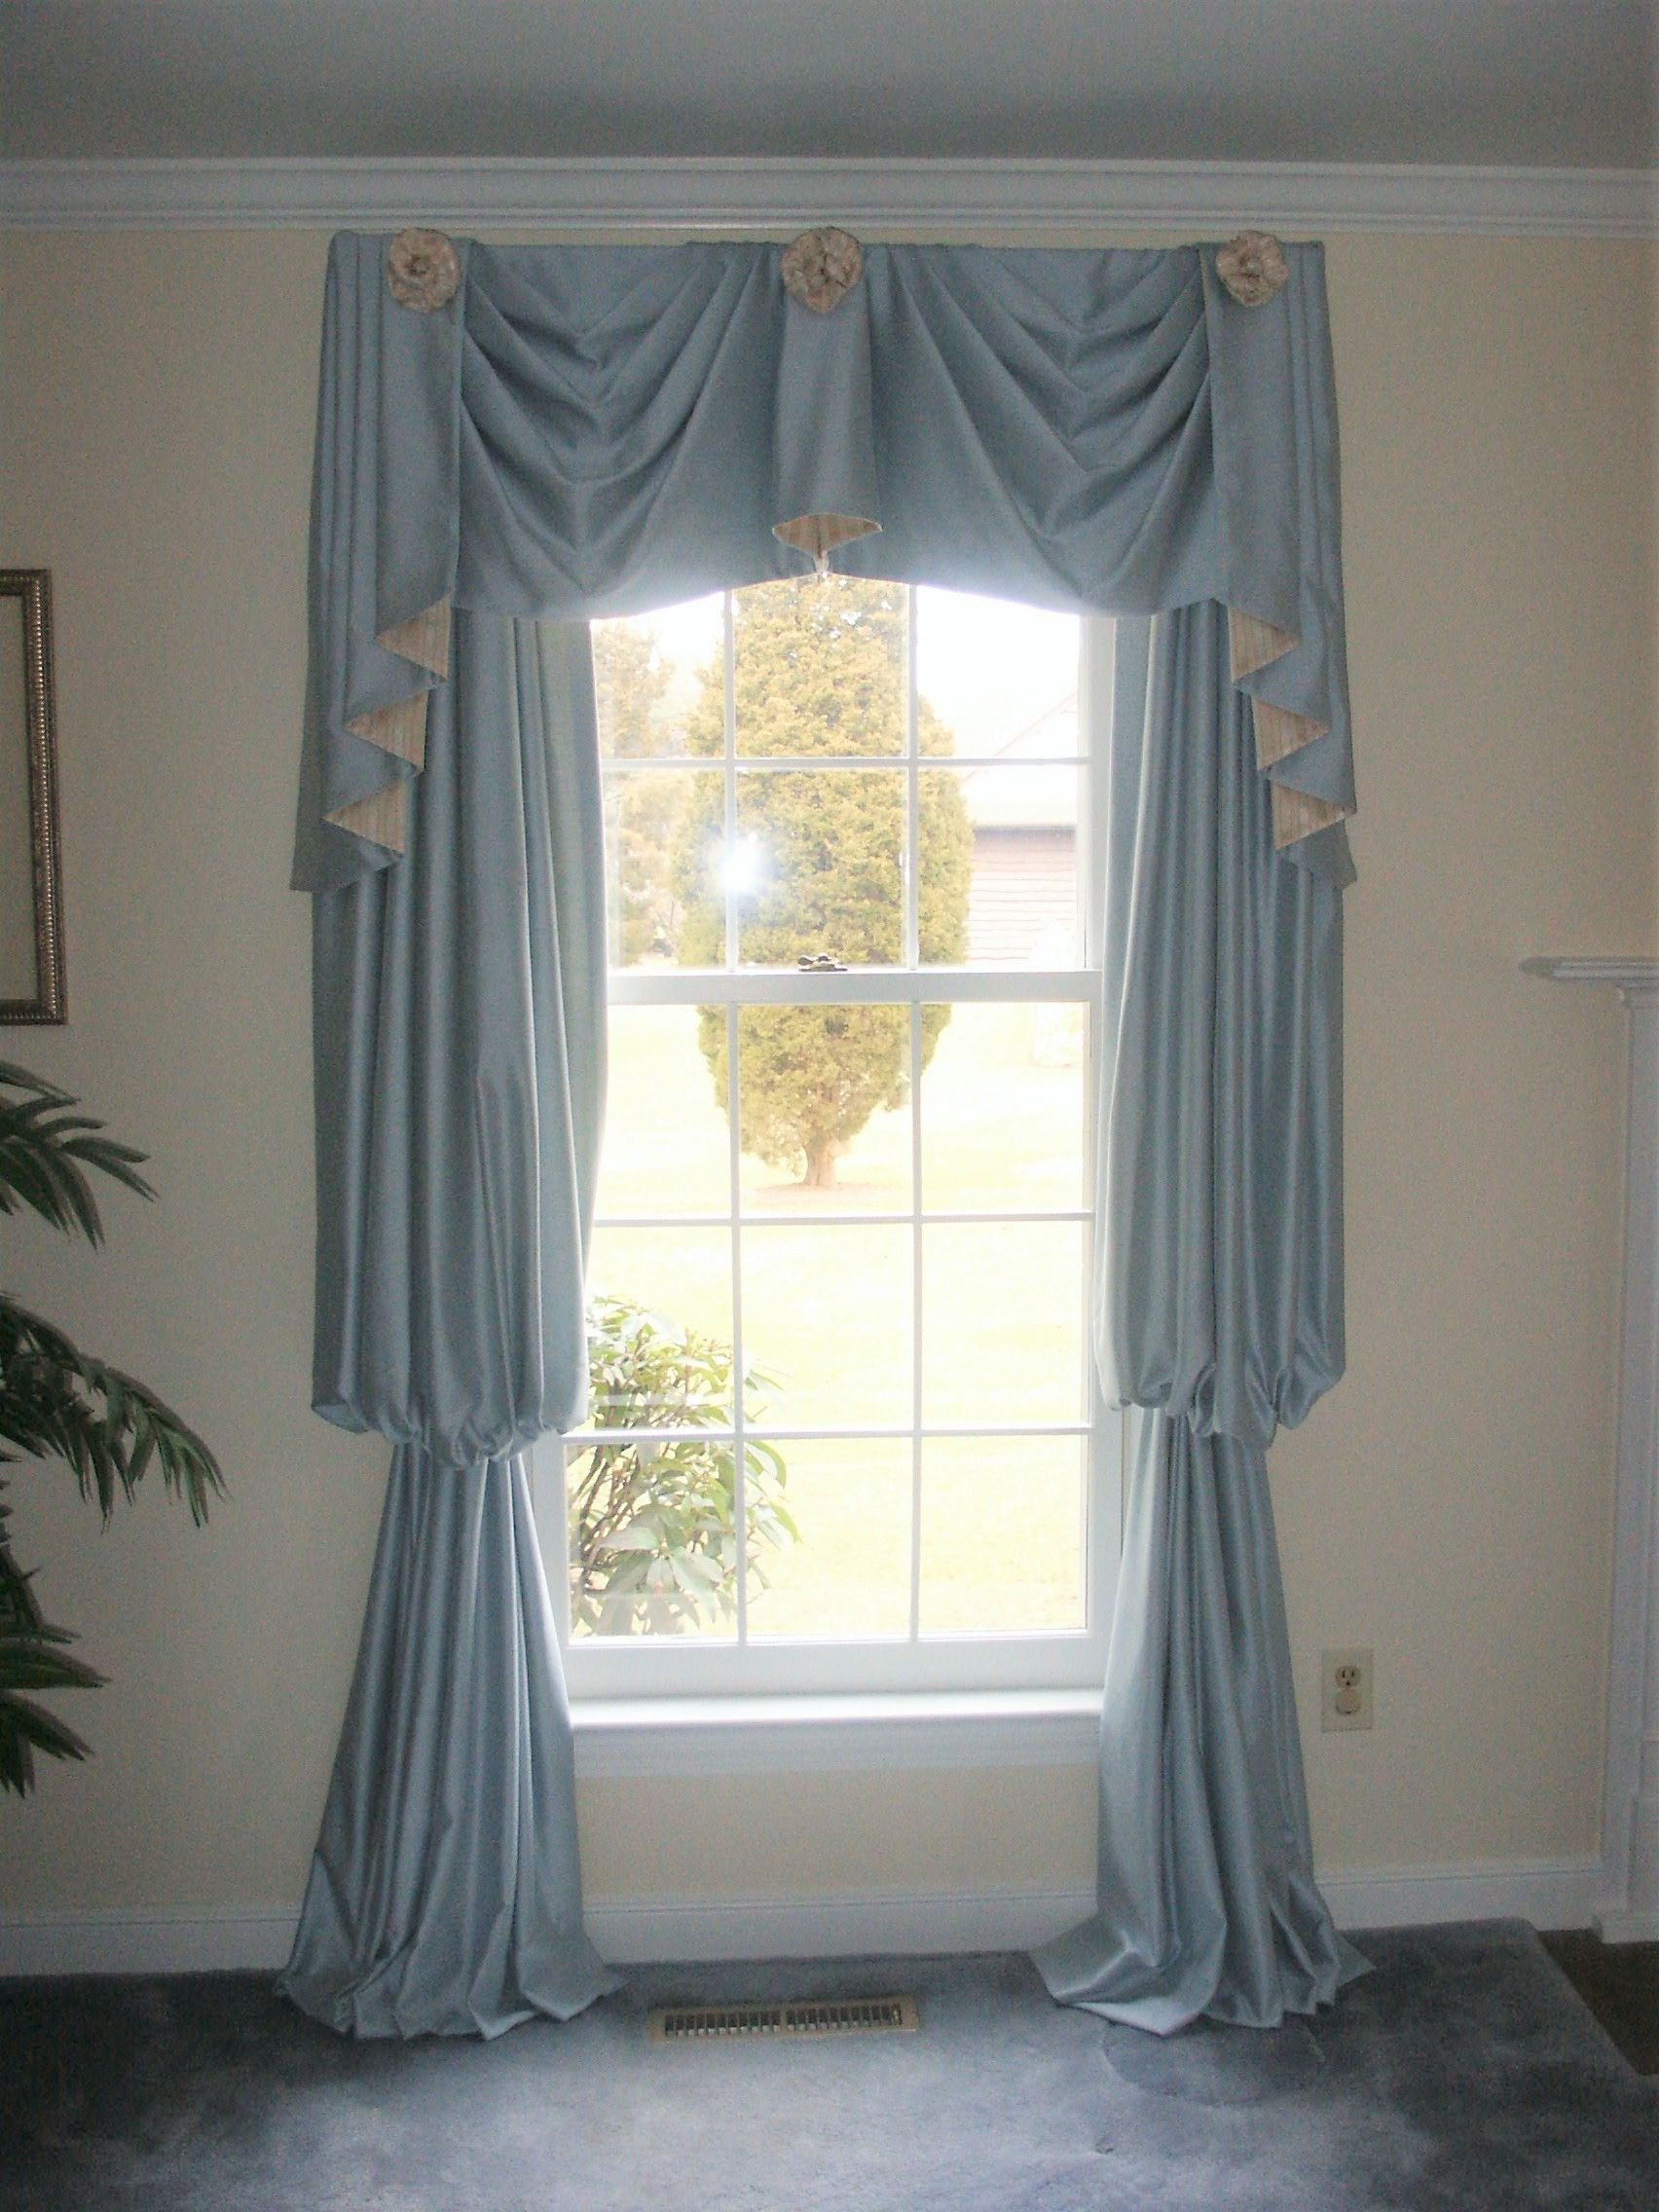 Empire Swags Jabots With Rosettes Over Bishop Sleeve Draperies